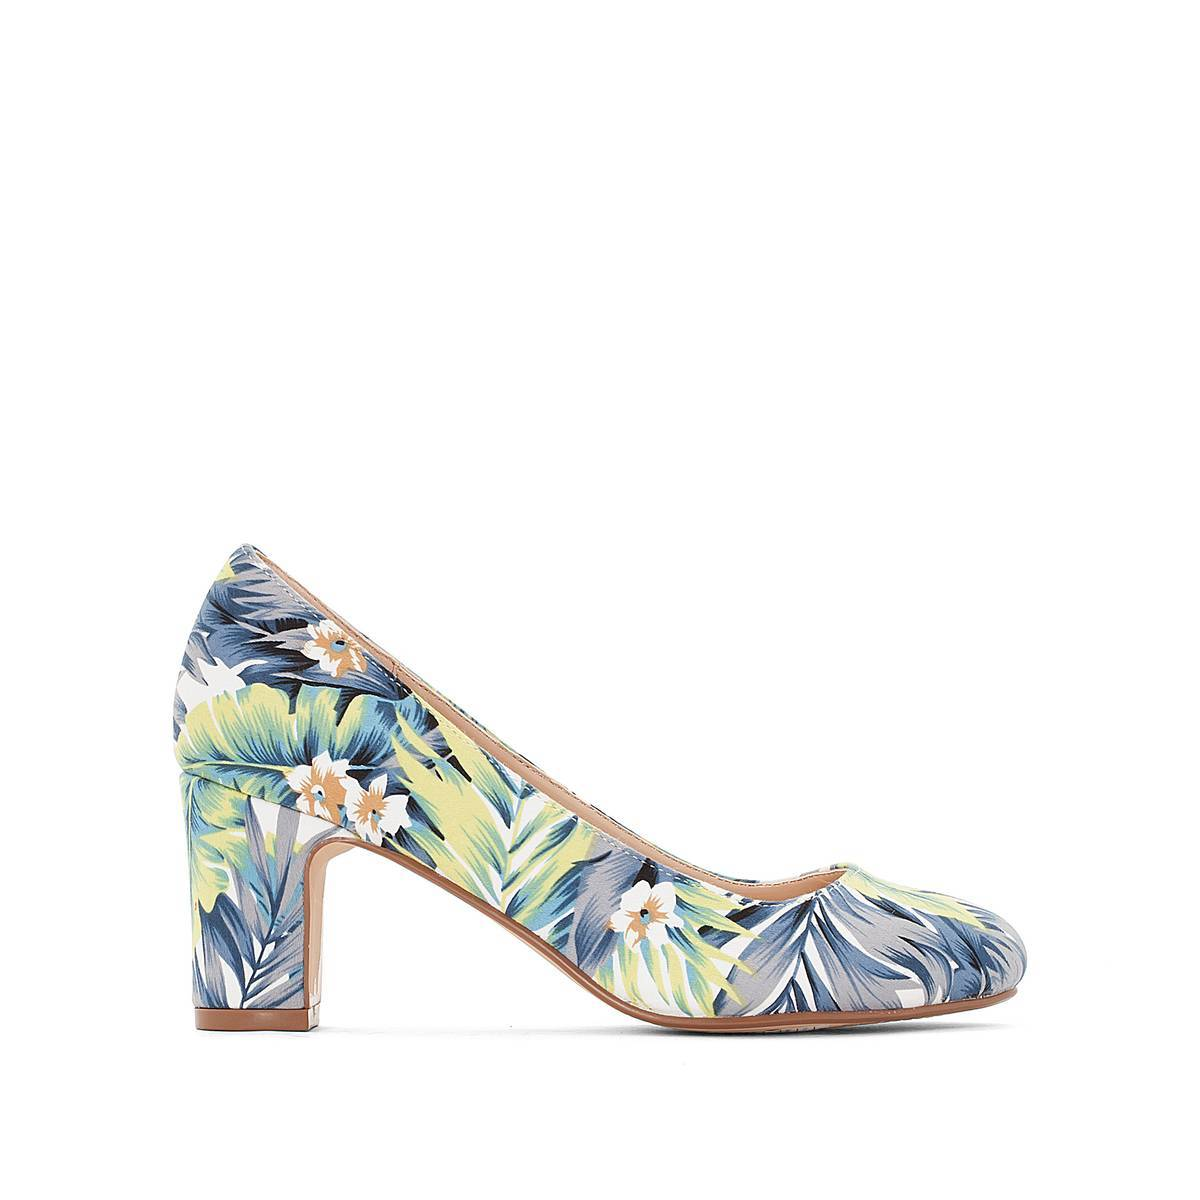 La Redoute Collections Zapatos de tacón con estampado tropical azul